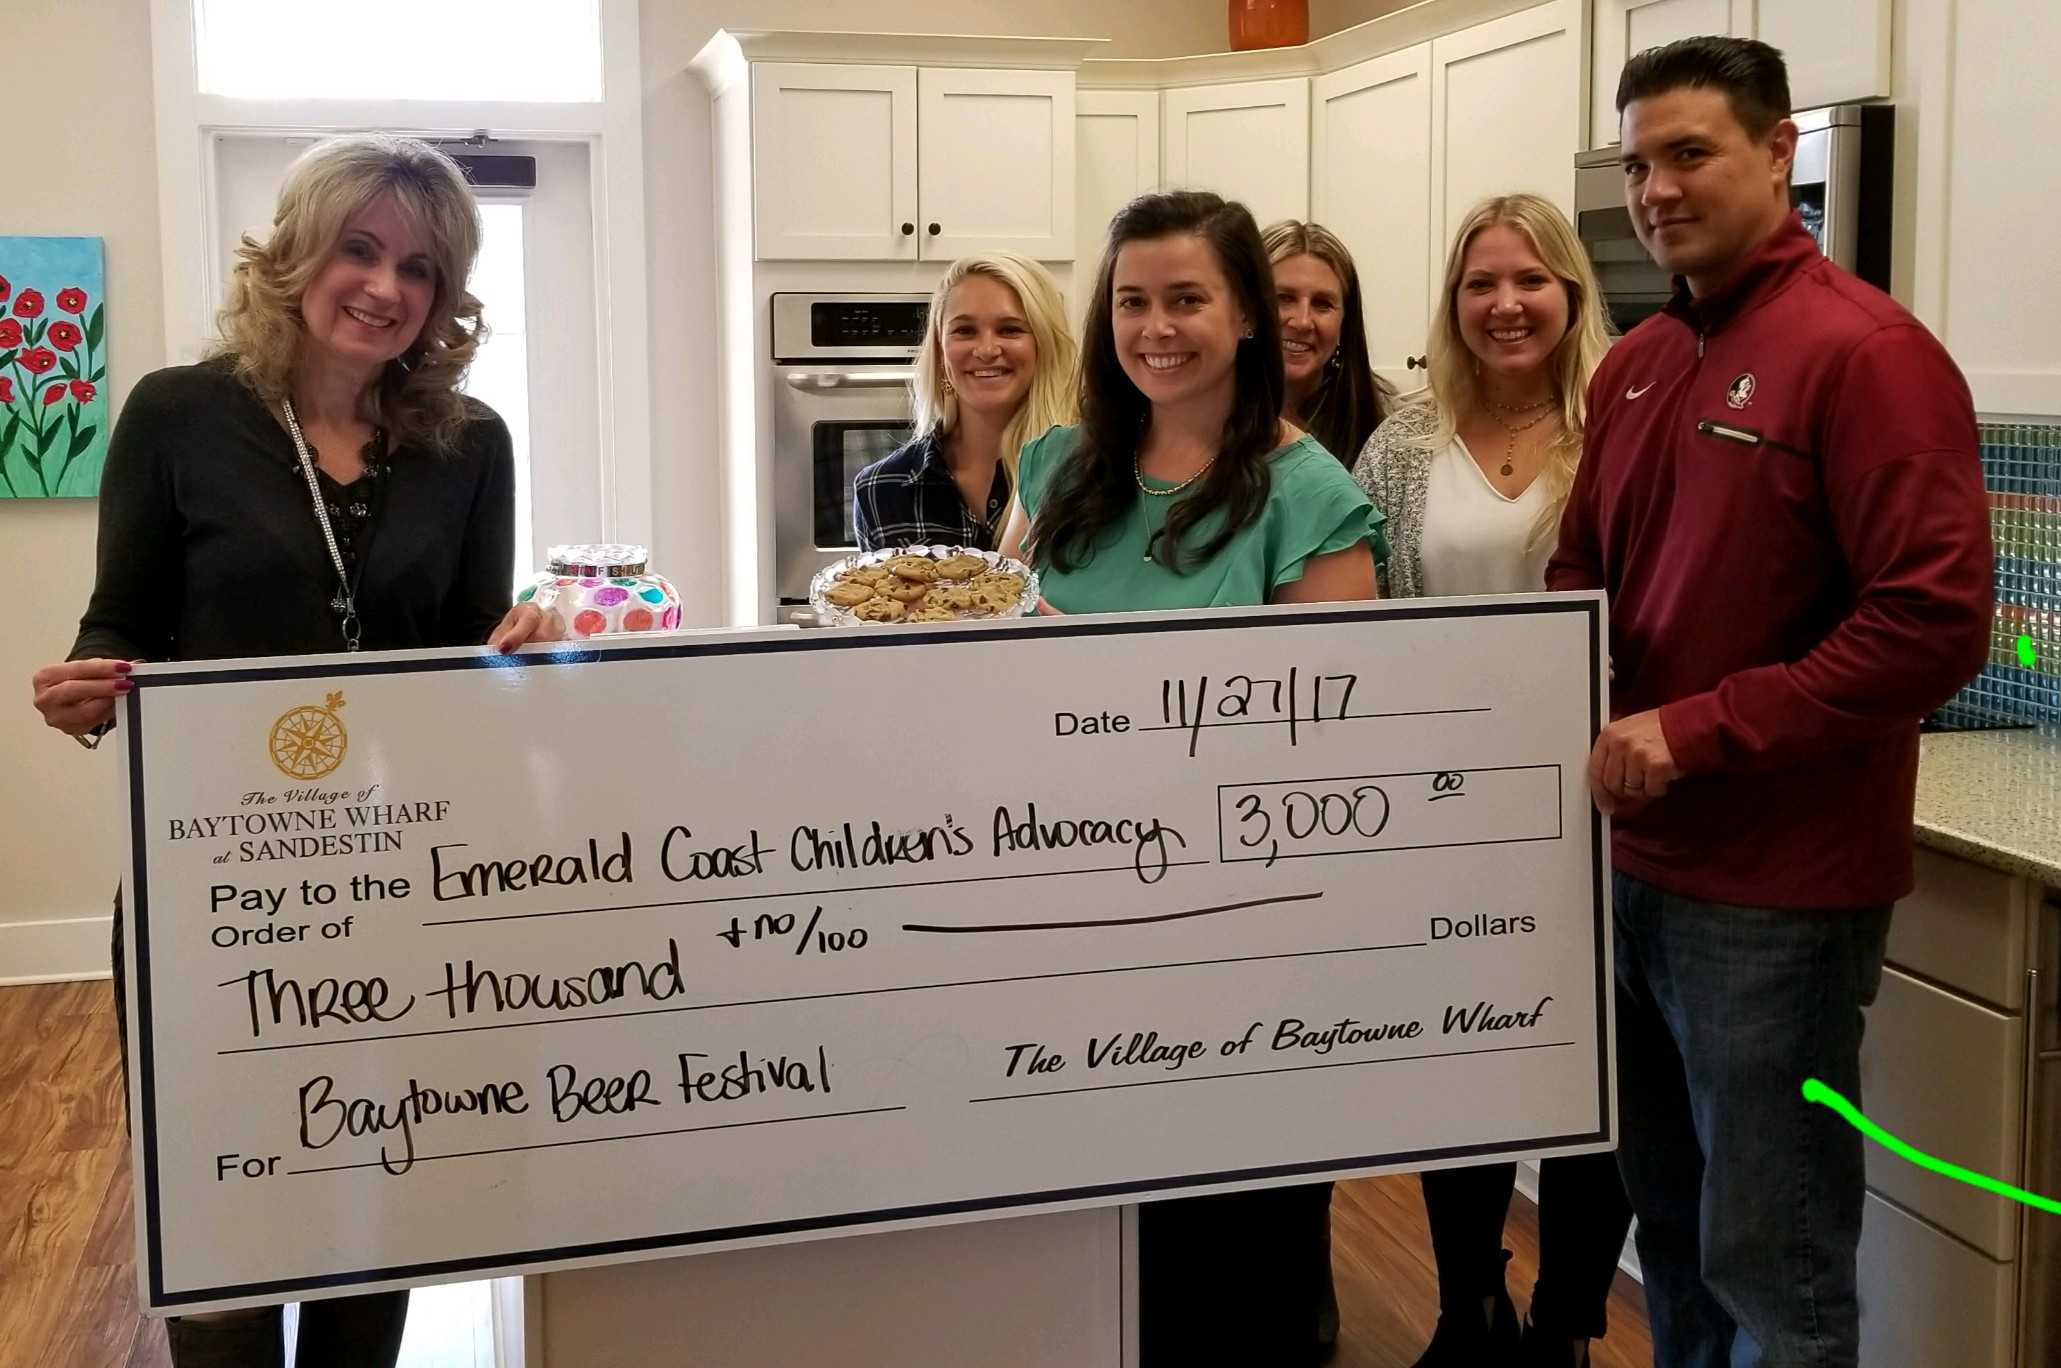 Baytowne Wharf at Sandestin staff at ECCAC's DeFuniak Springs location to present a $3,000 check   to the non-profit organization from their Beer Festival event.    L-R Julie Hurst, Chelsea Fox and Kim Henderson from ECCAC with Julie Stuckey, Leighann Elliott and Alan Meyers from Baytowne.